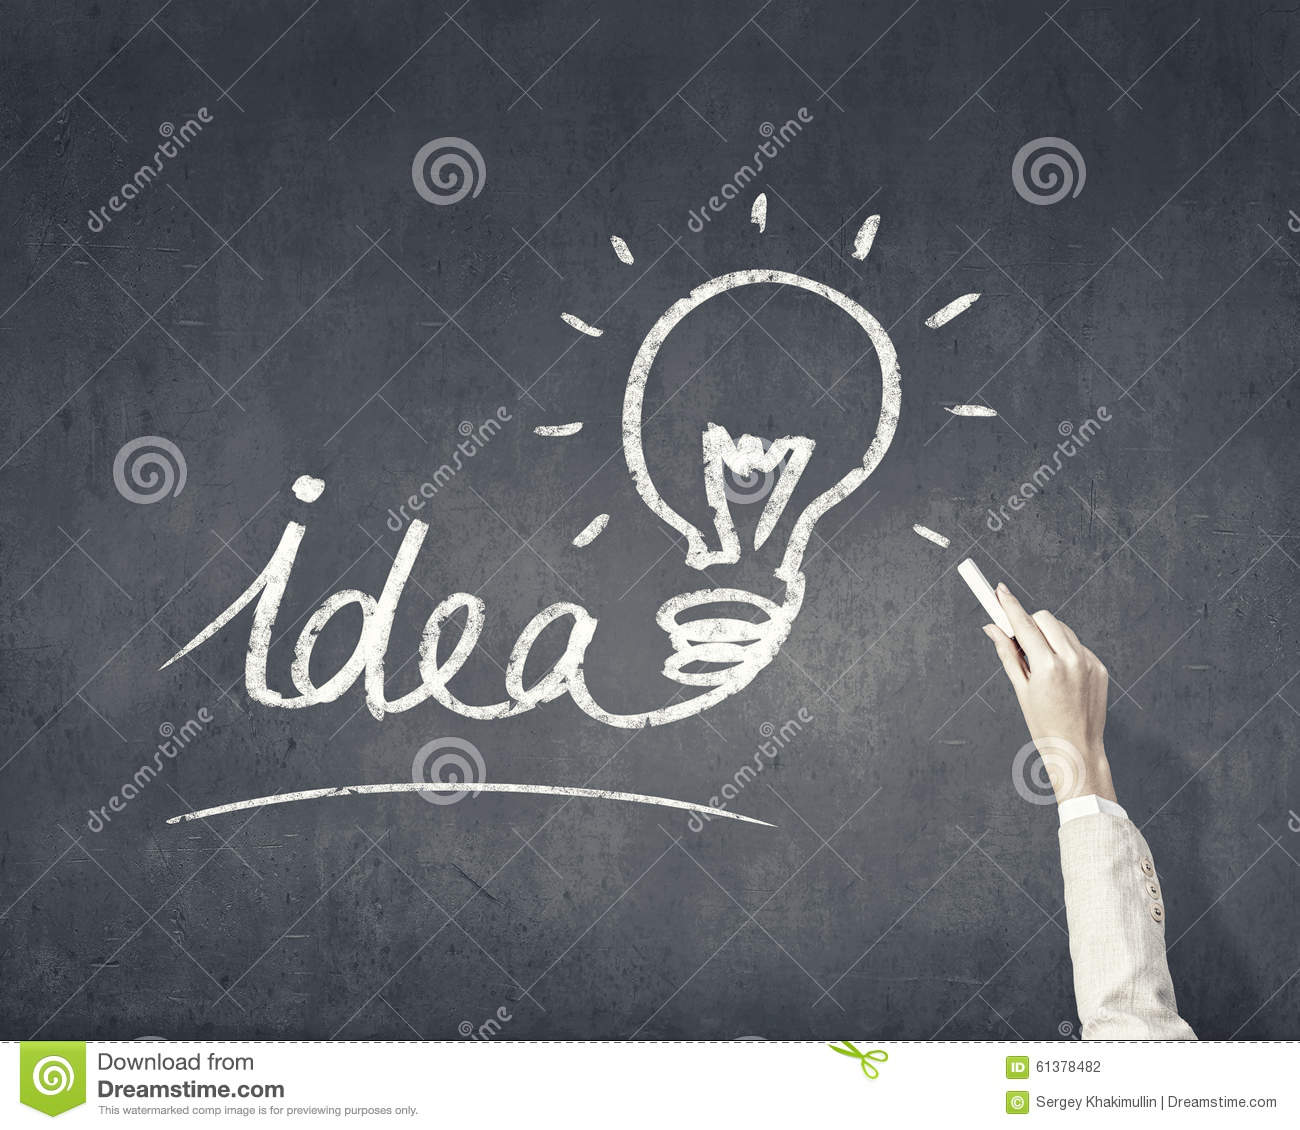 How to find good idea stock illustration. Illustration of